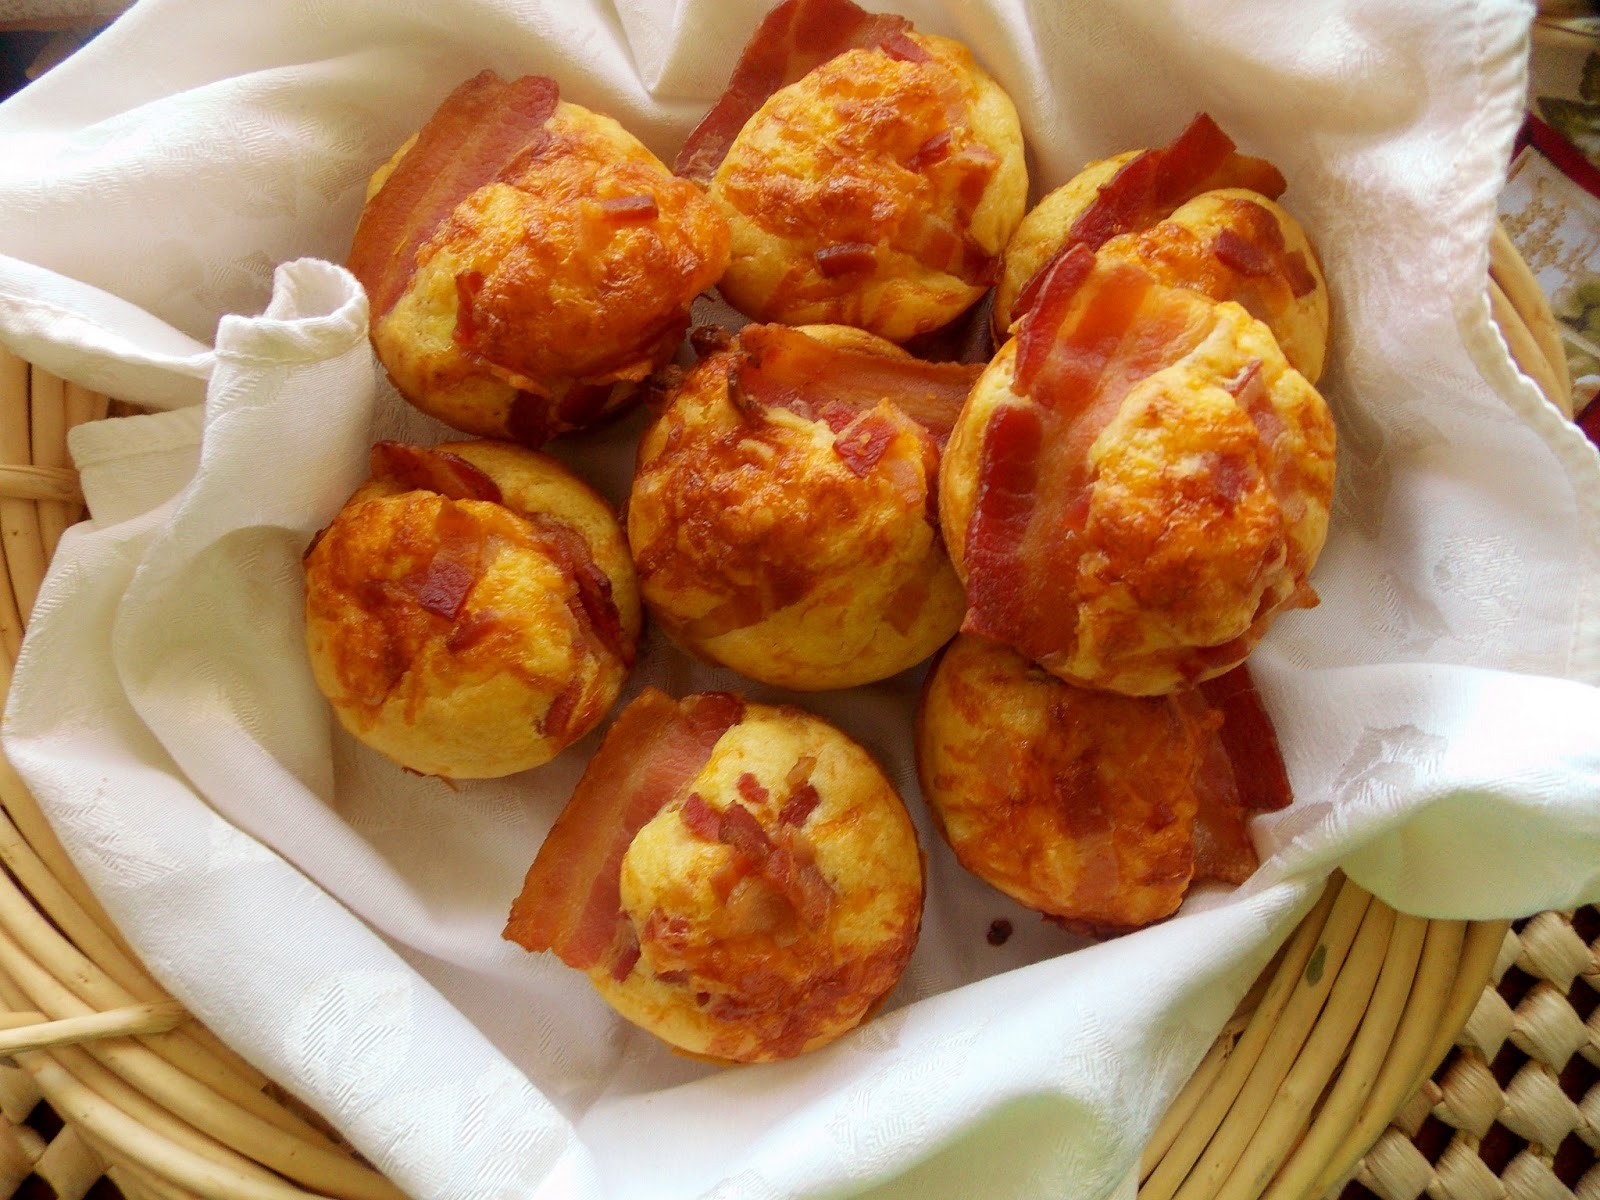 Food and Thrift: Bacon-and-Egg Muffins